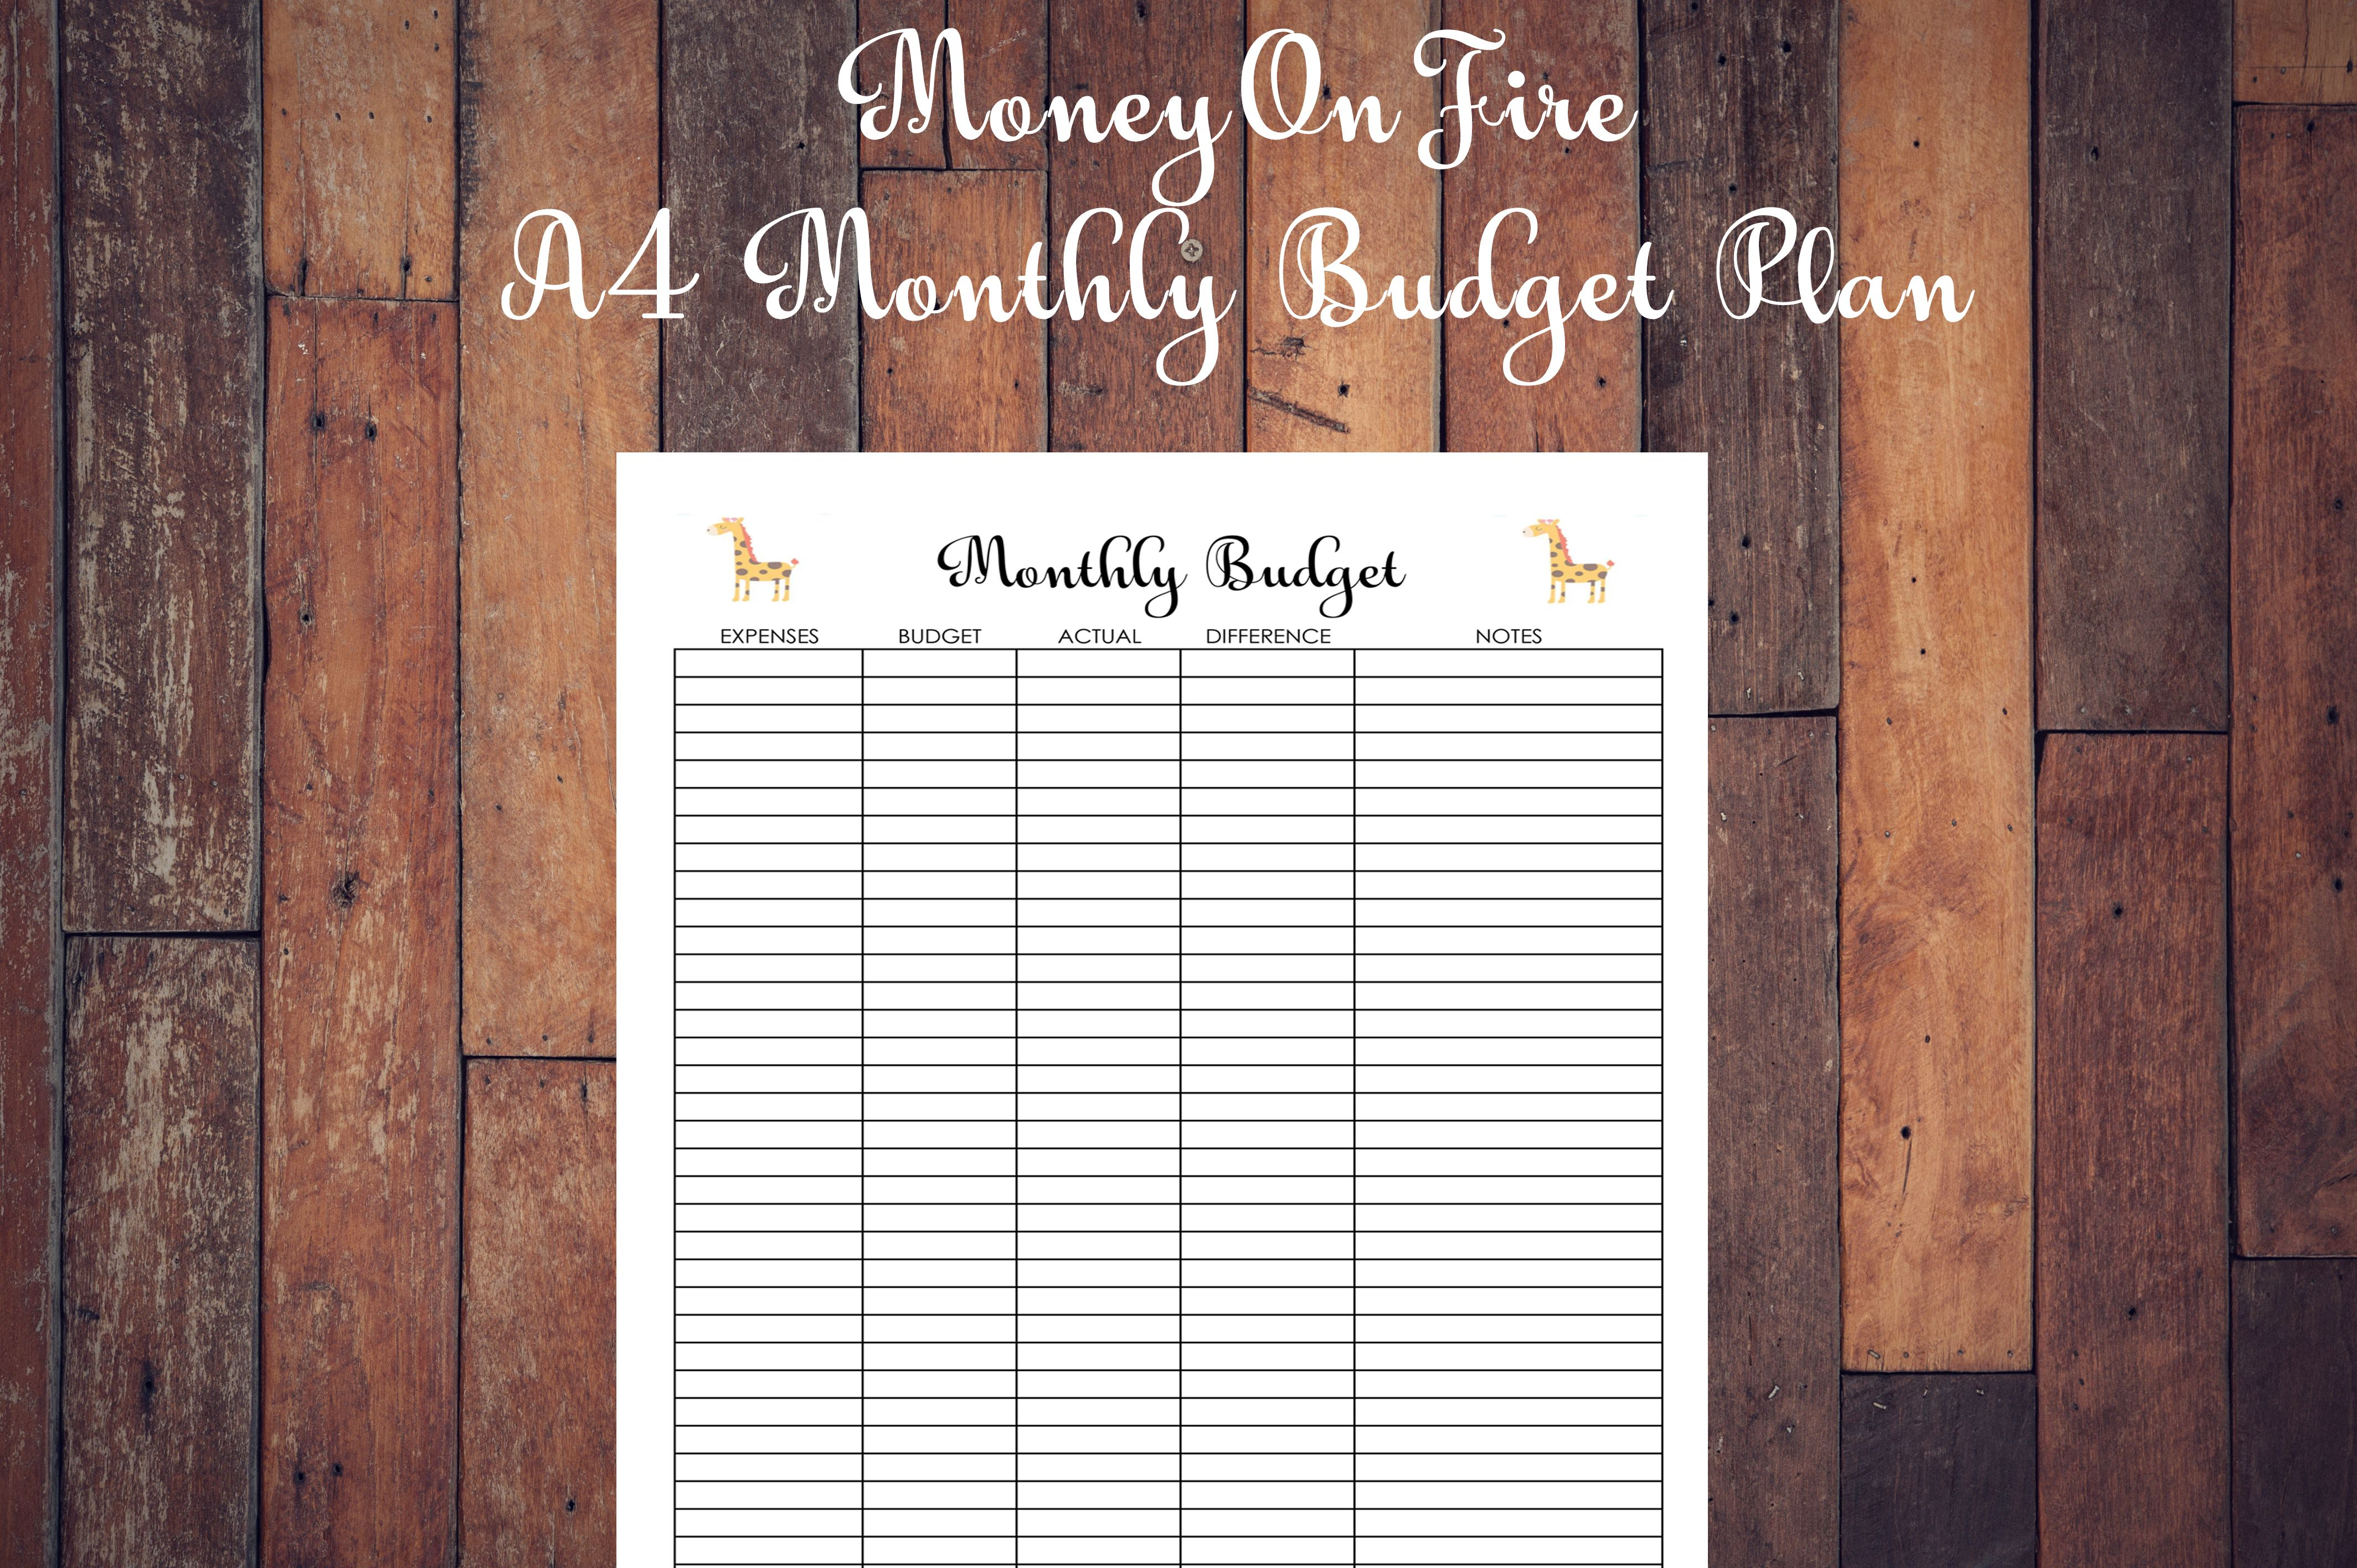 Monthly Budget Plan Printable Etsyshop Etsyseller